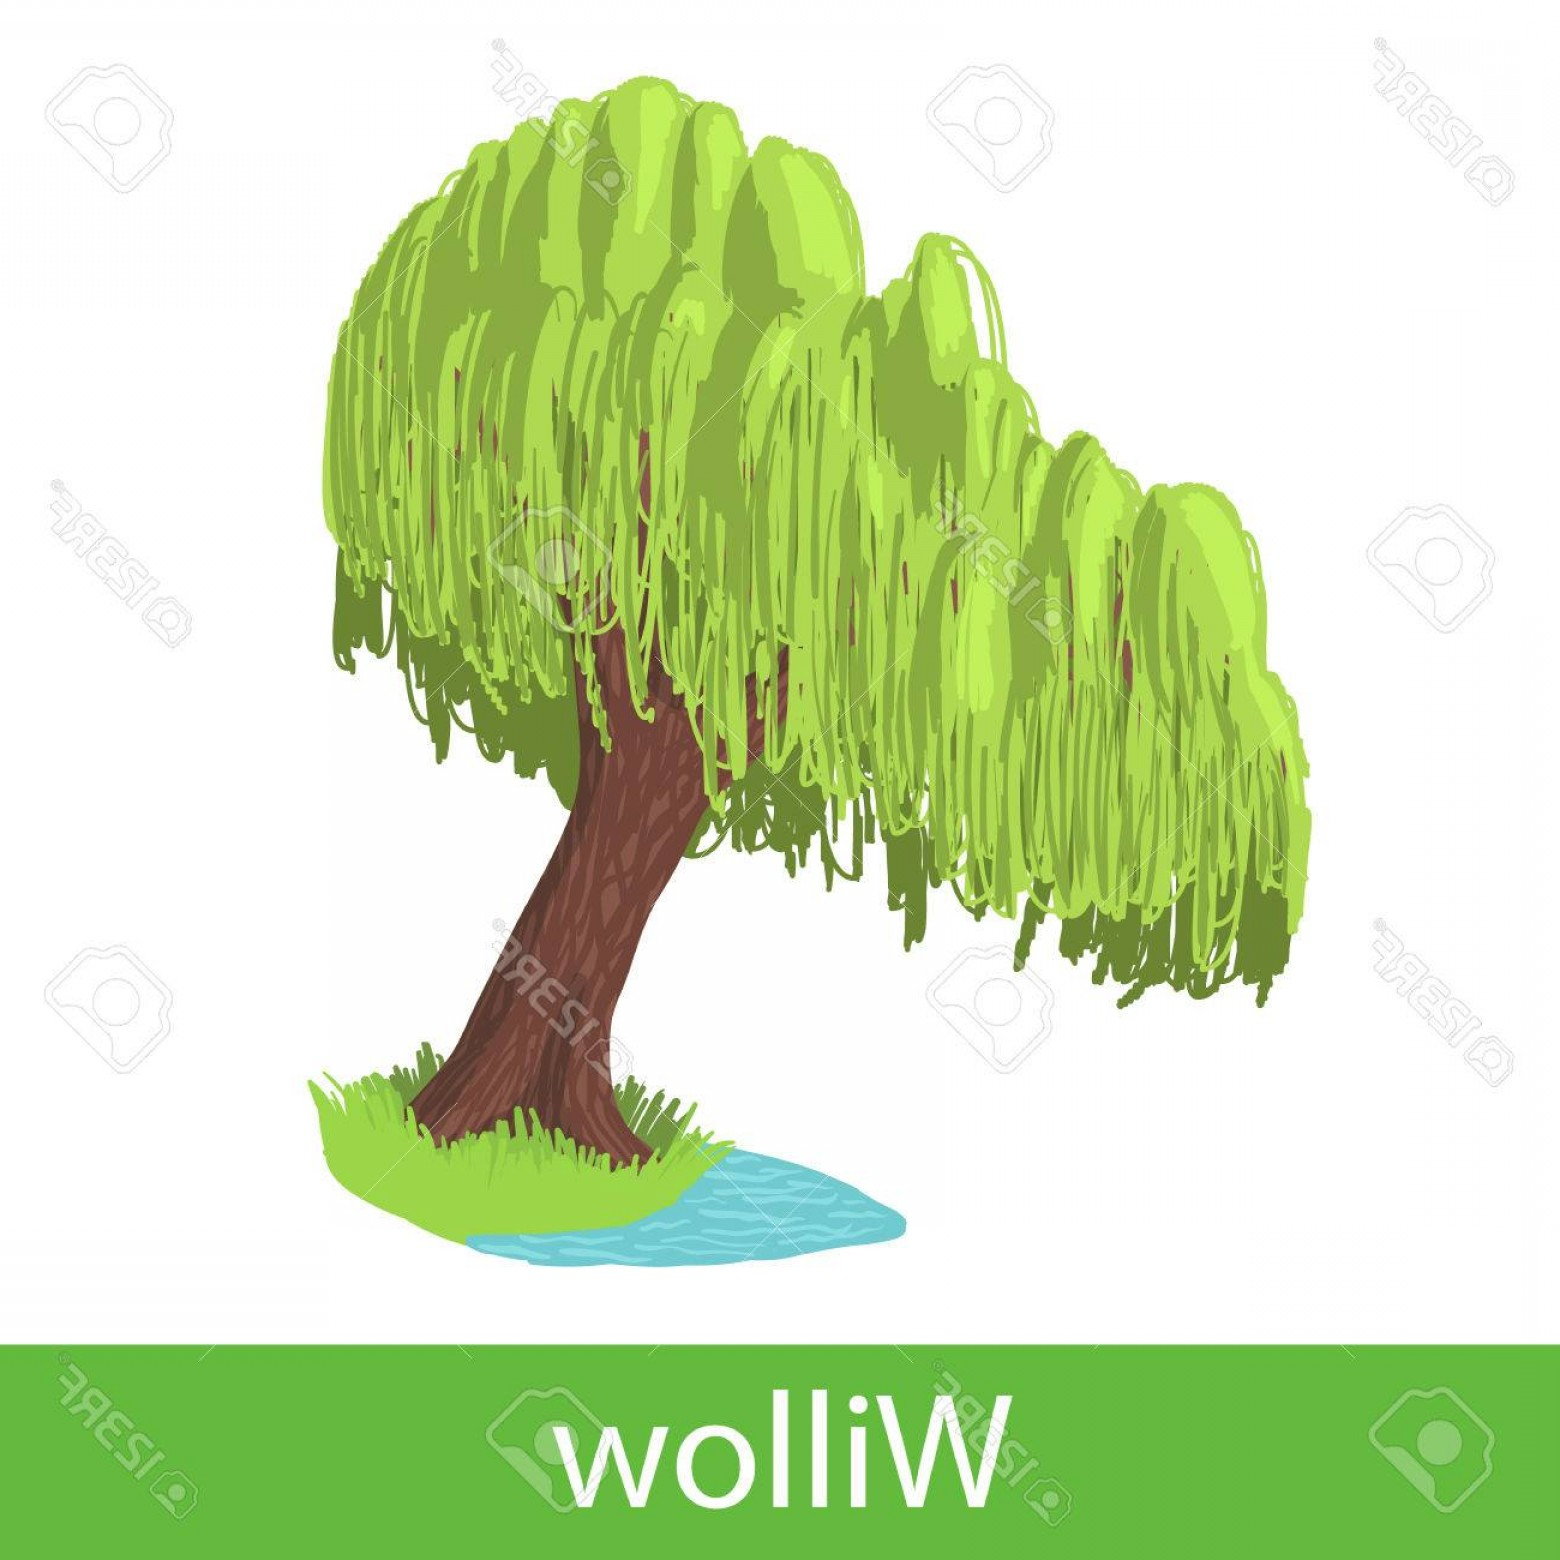 Vector Natural Willow: Photostock Vector Willow Cartoon Tree Single Illustration On A White Background